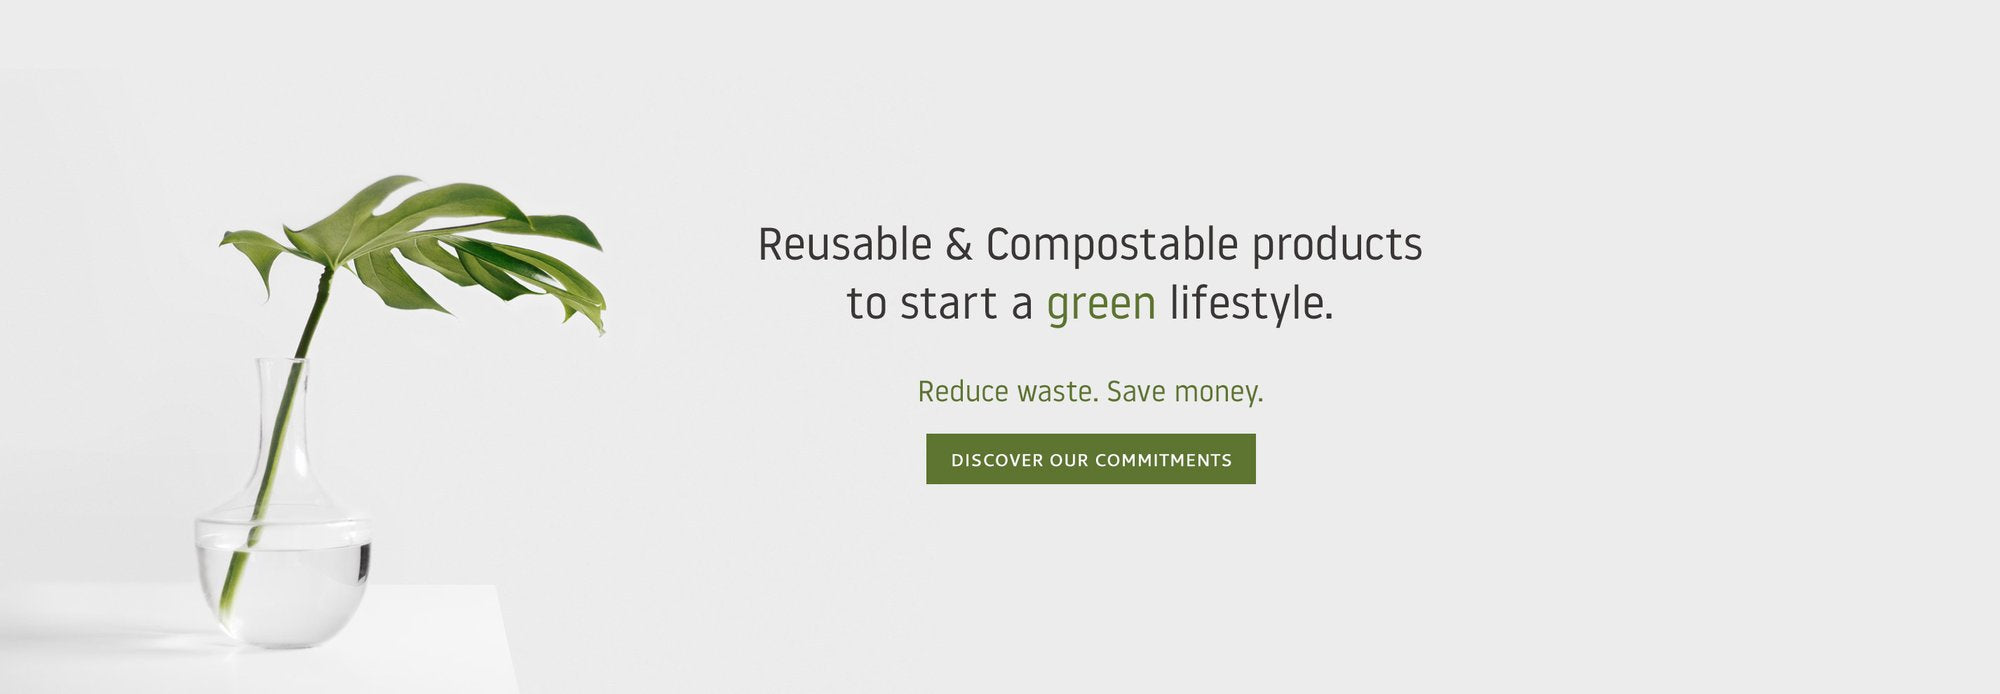 Presentation zero waste products